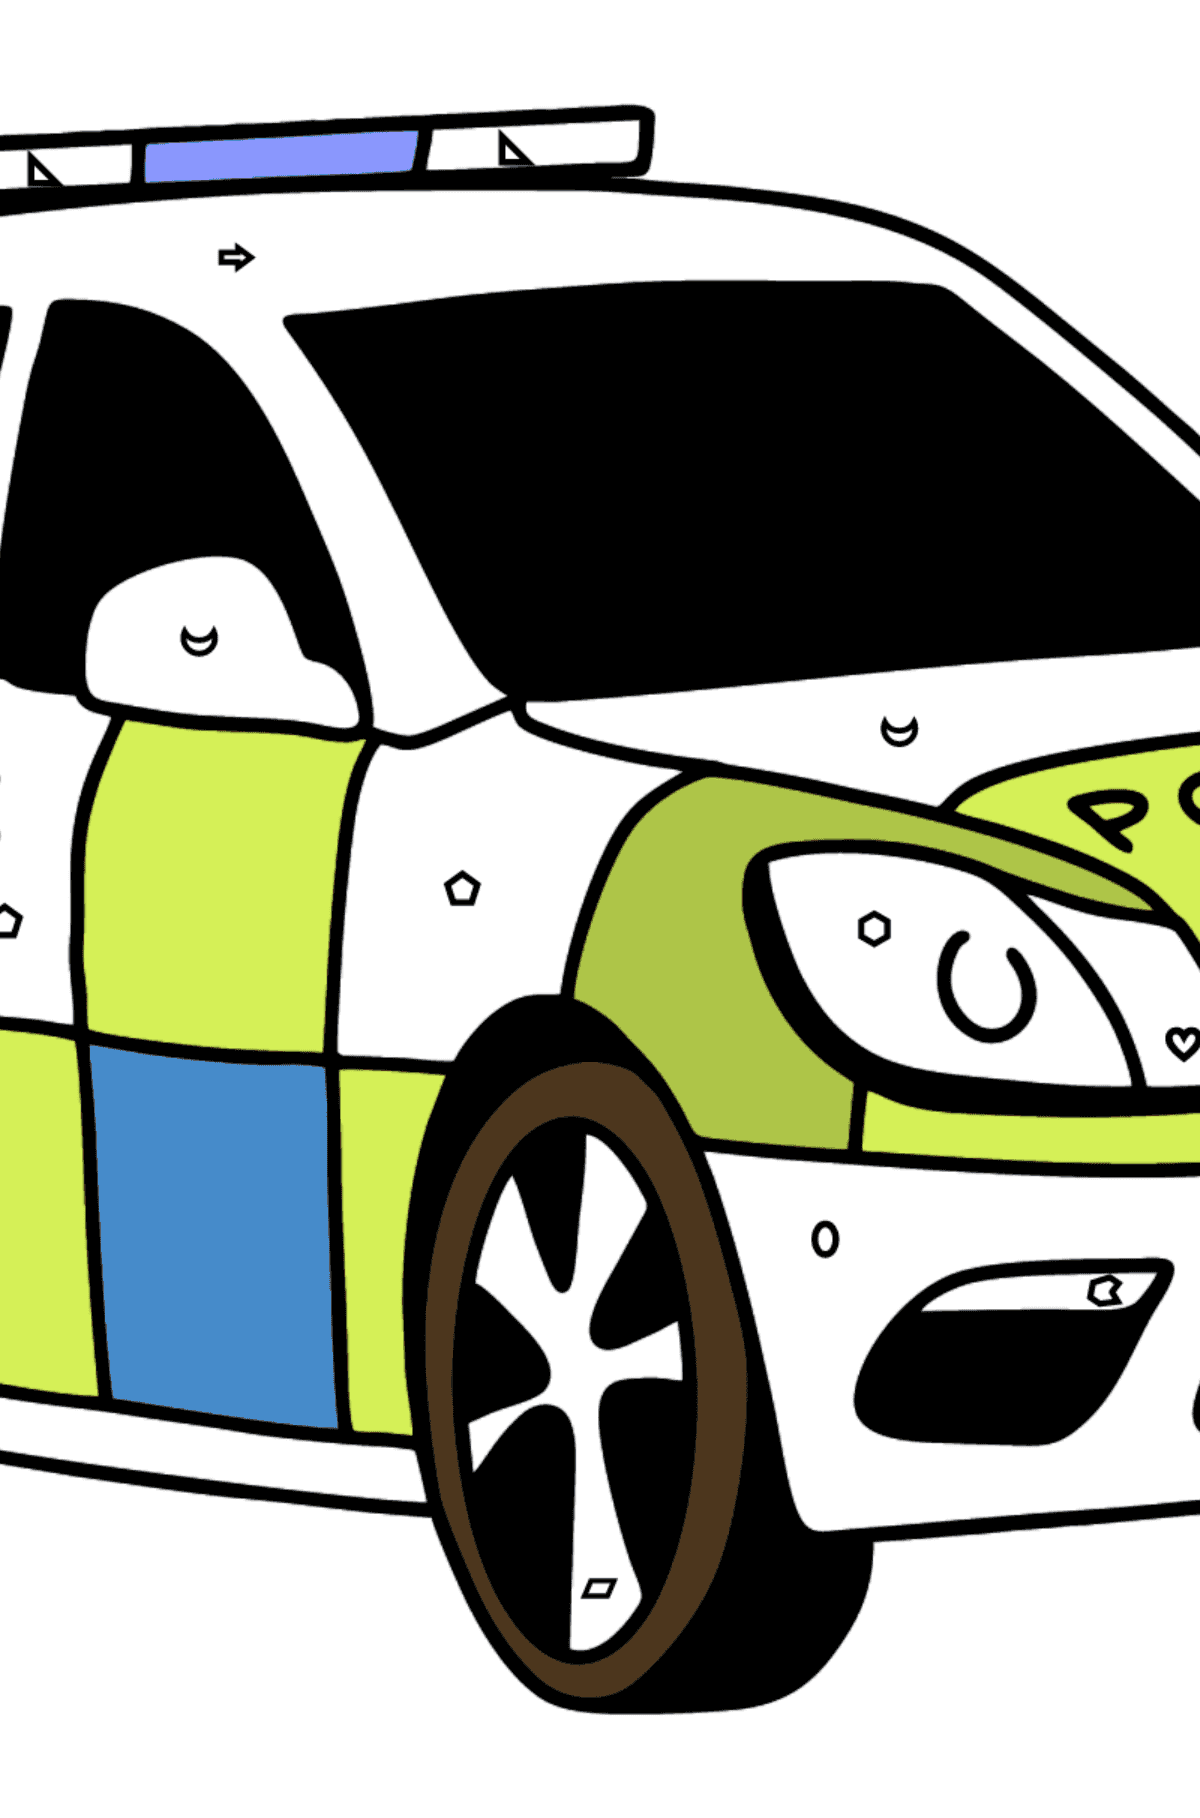 UK Police Car coloring page - Coloring by Geometric Shapes for Kids